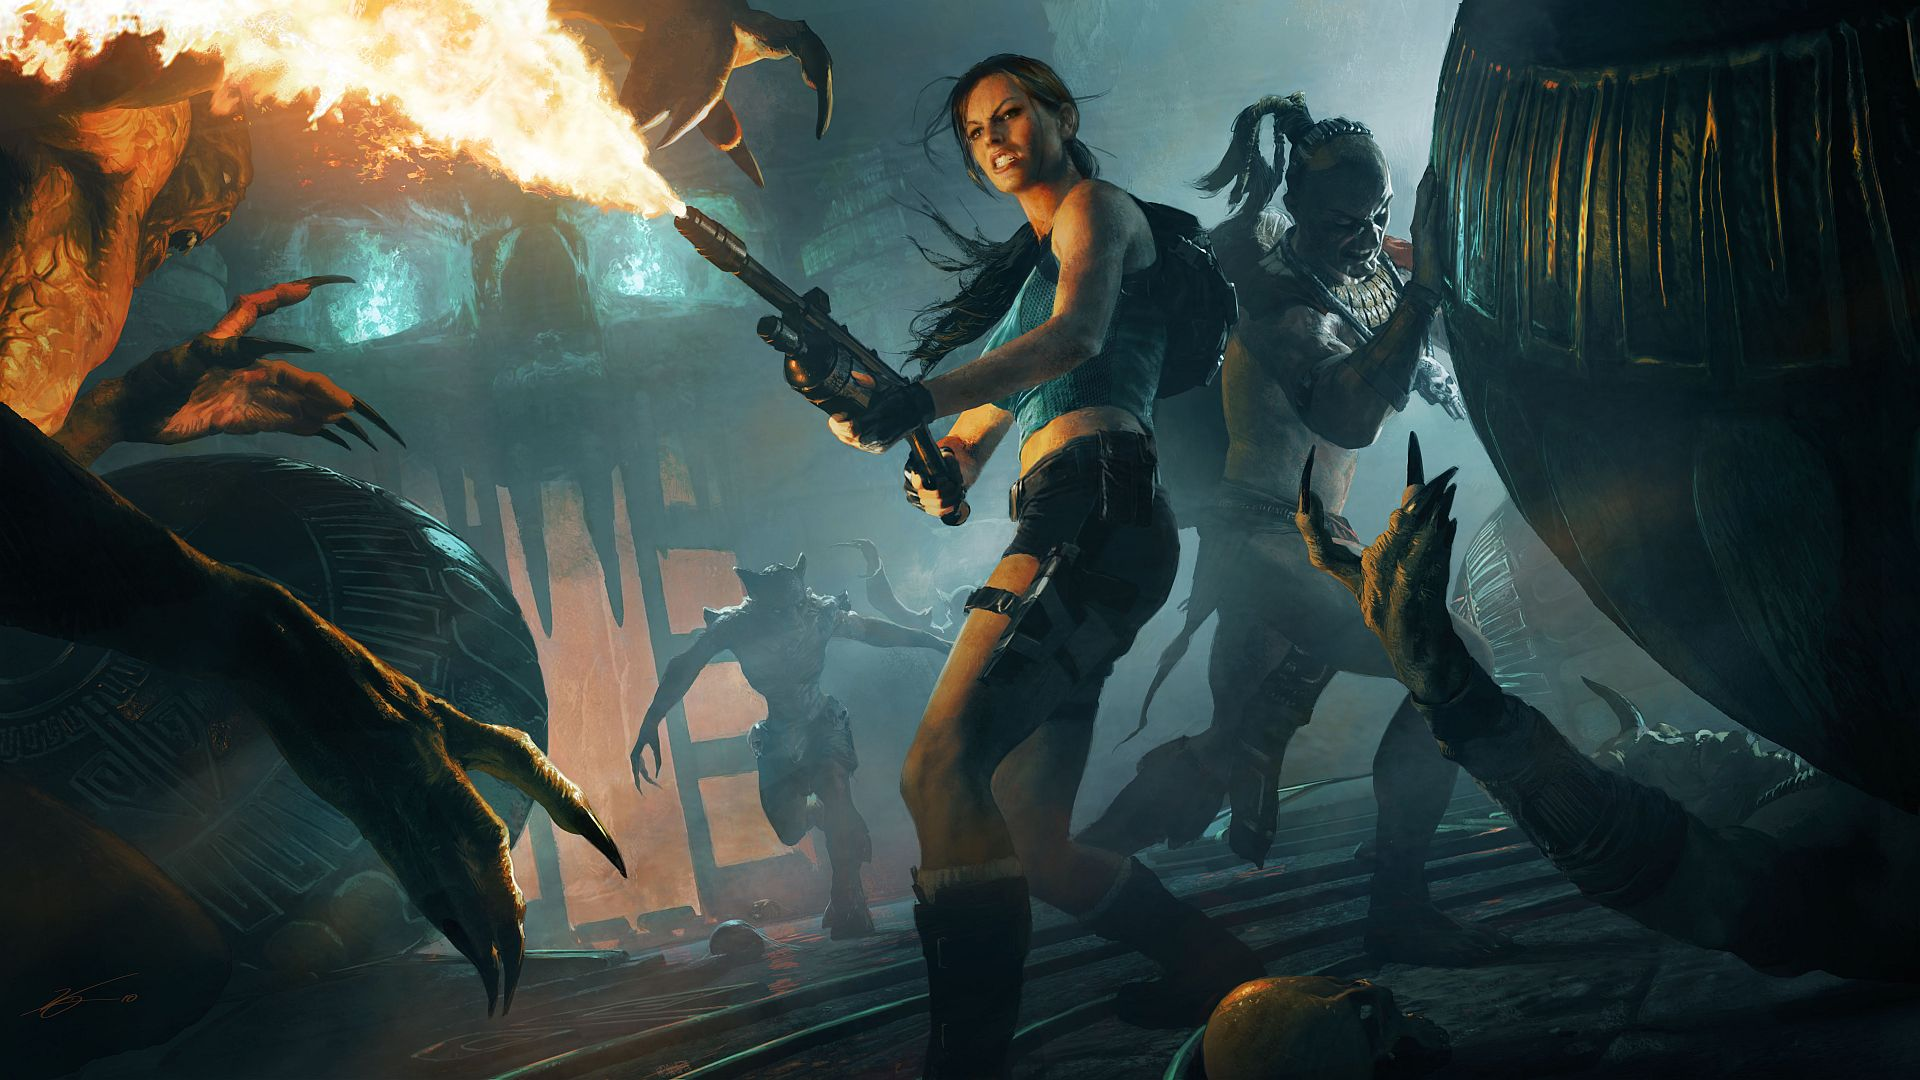 Арт к игре Lara Croft and the Guardian of Light